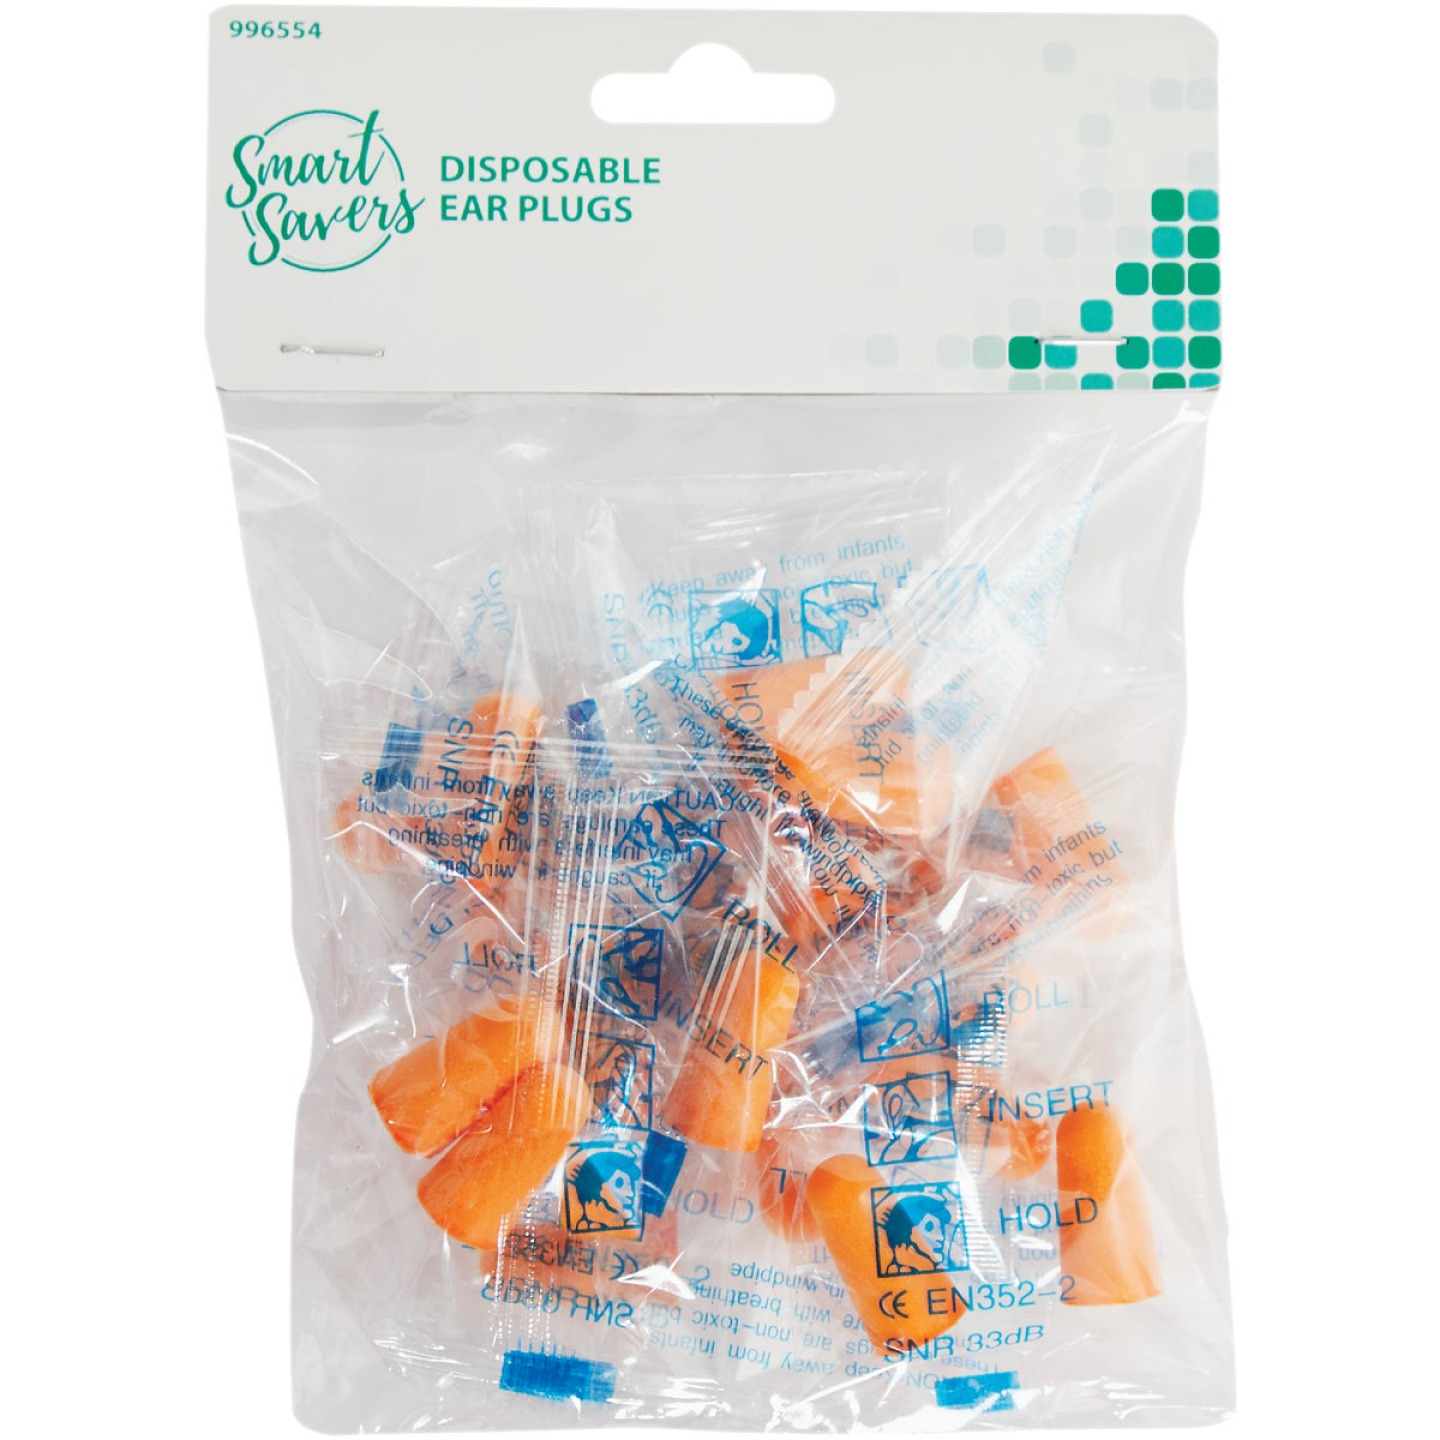 Smart Savers Foam Disposable Ear Plugs (10-Pair) Image 2